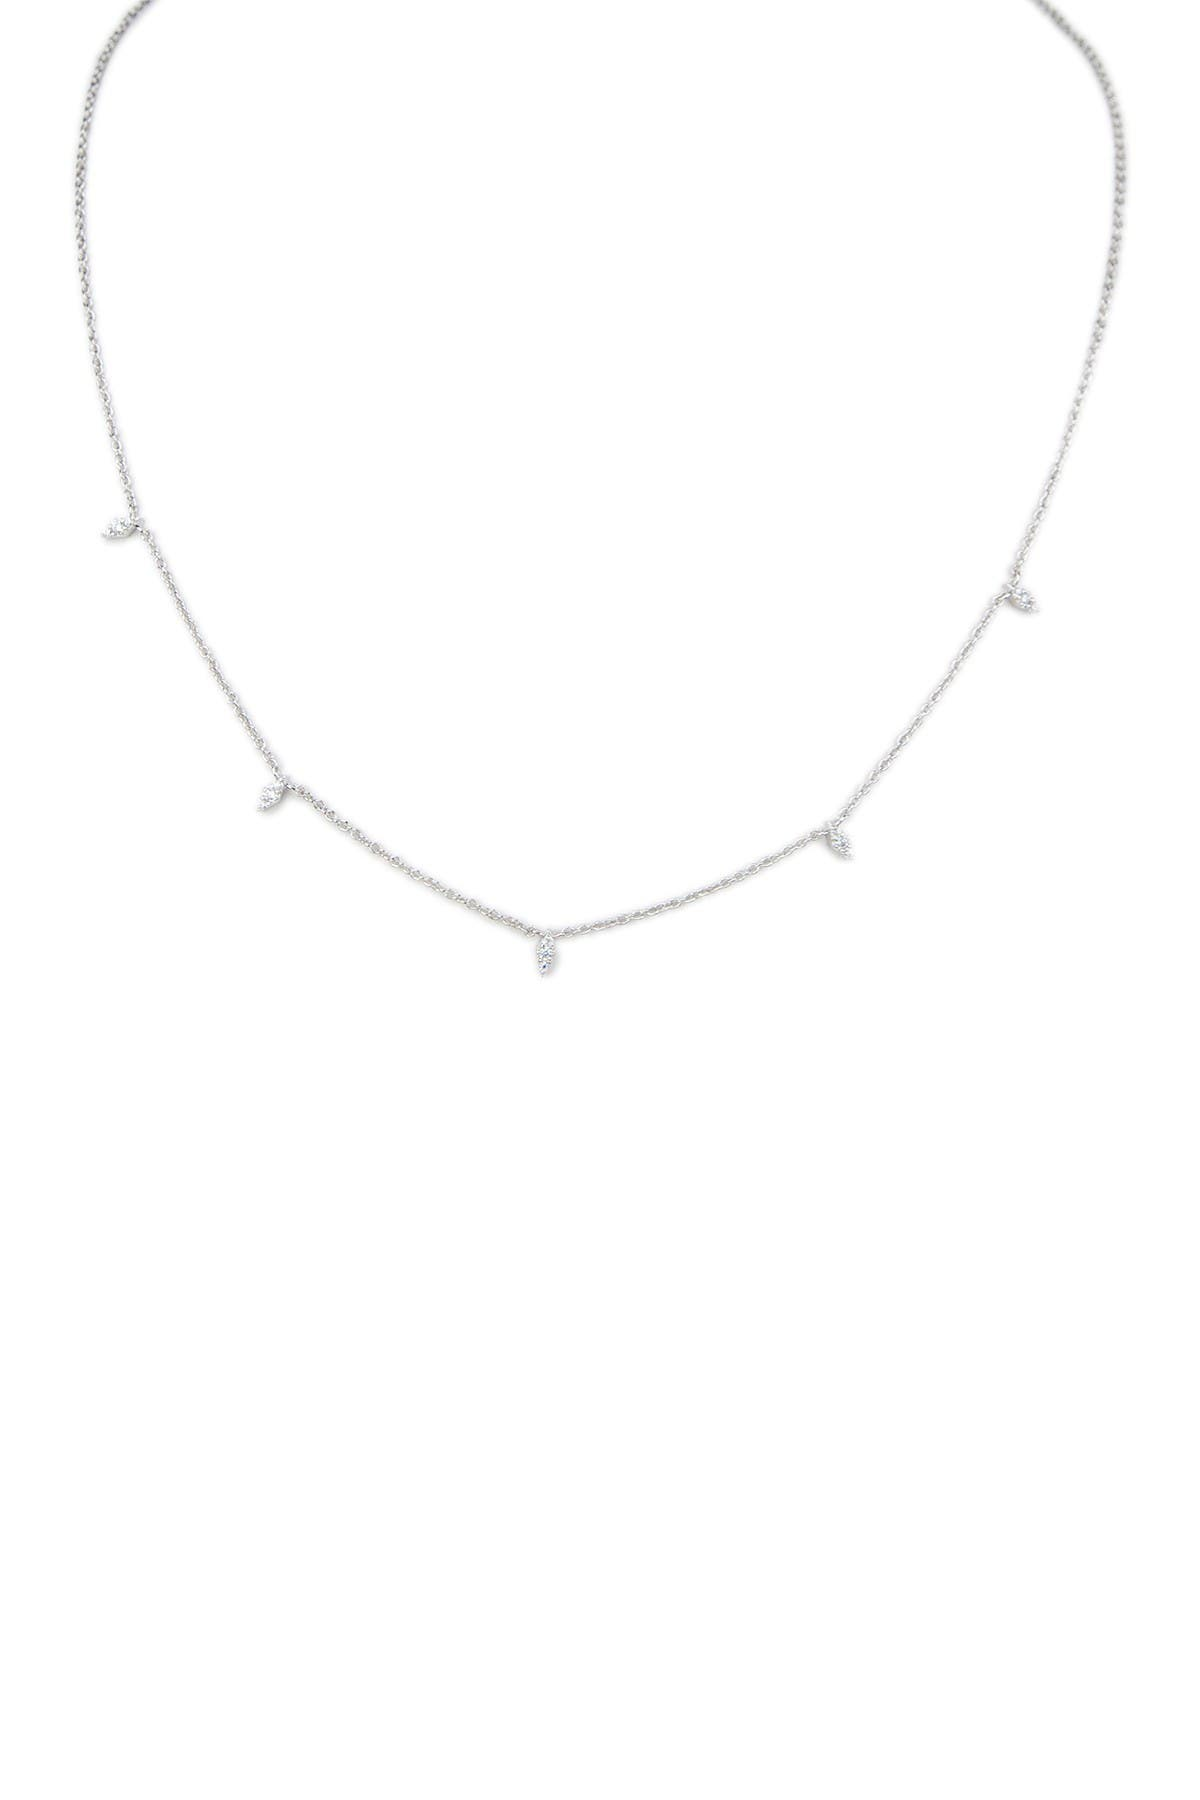 Image of CZ By Kenneth Jay Lane Dainty Spike CZ Station Necklace